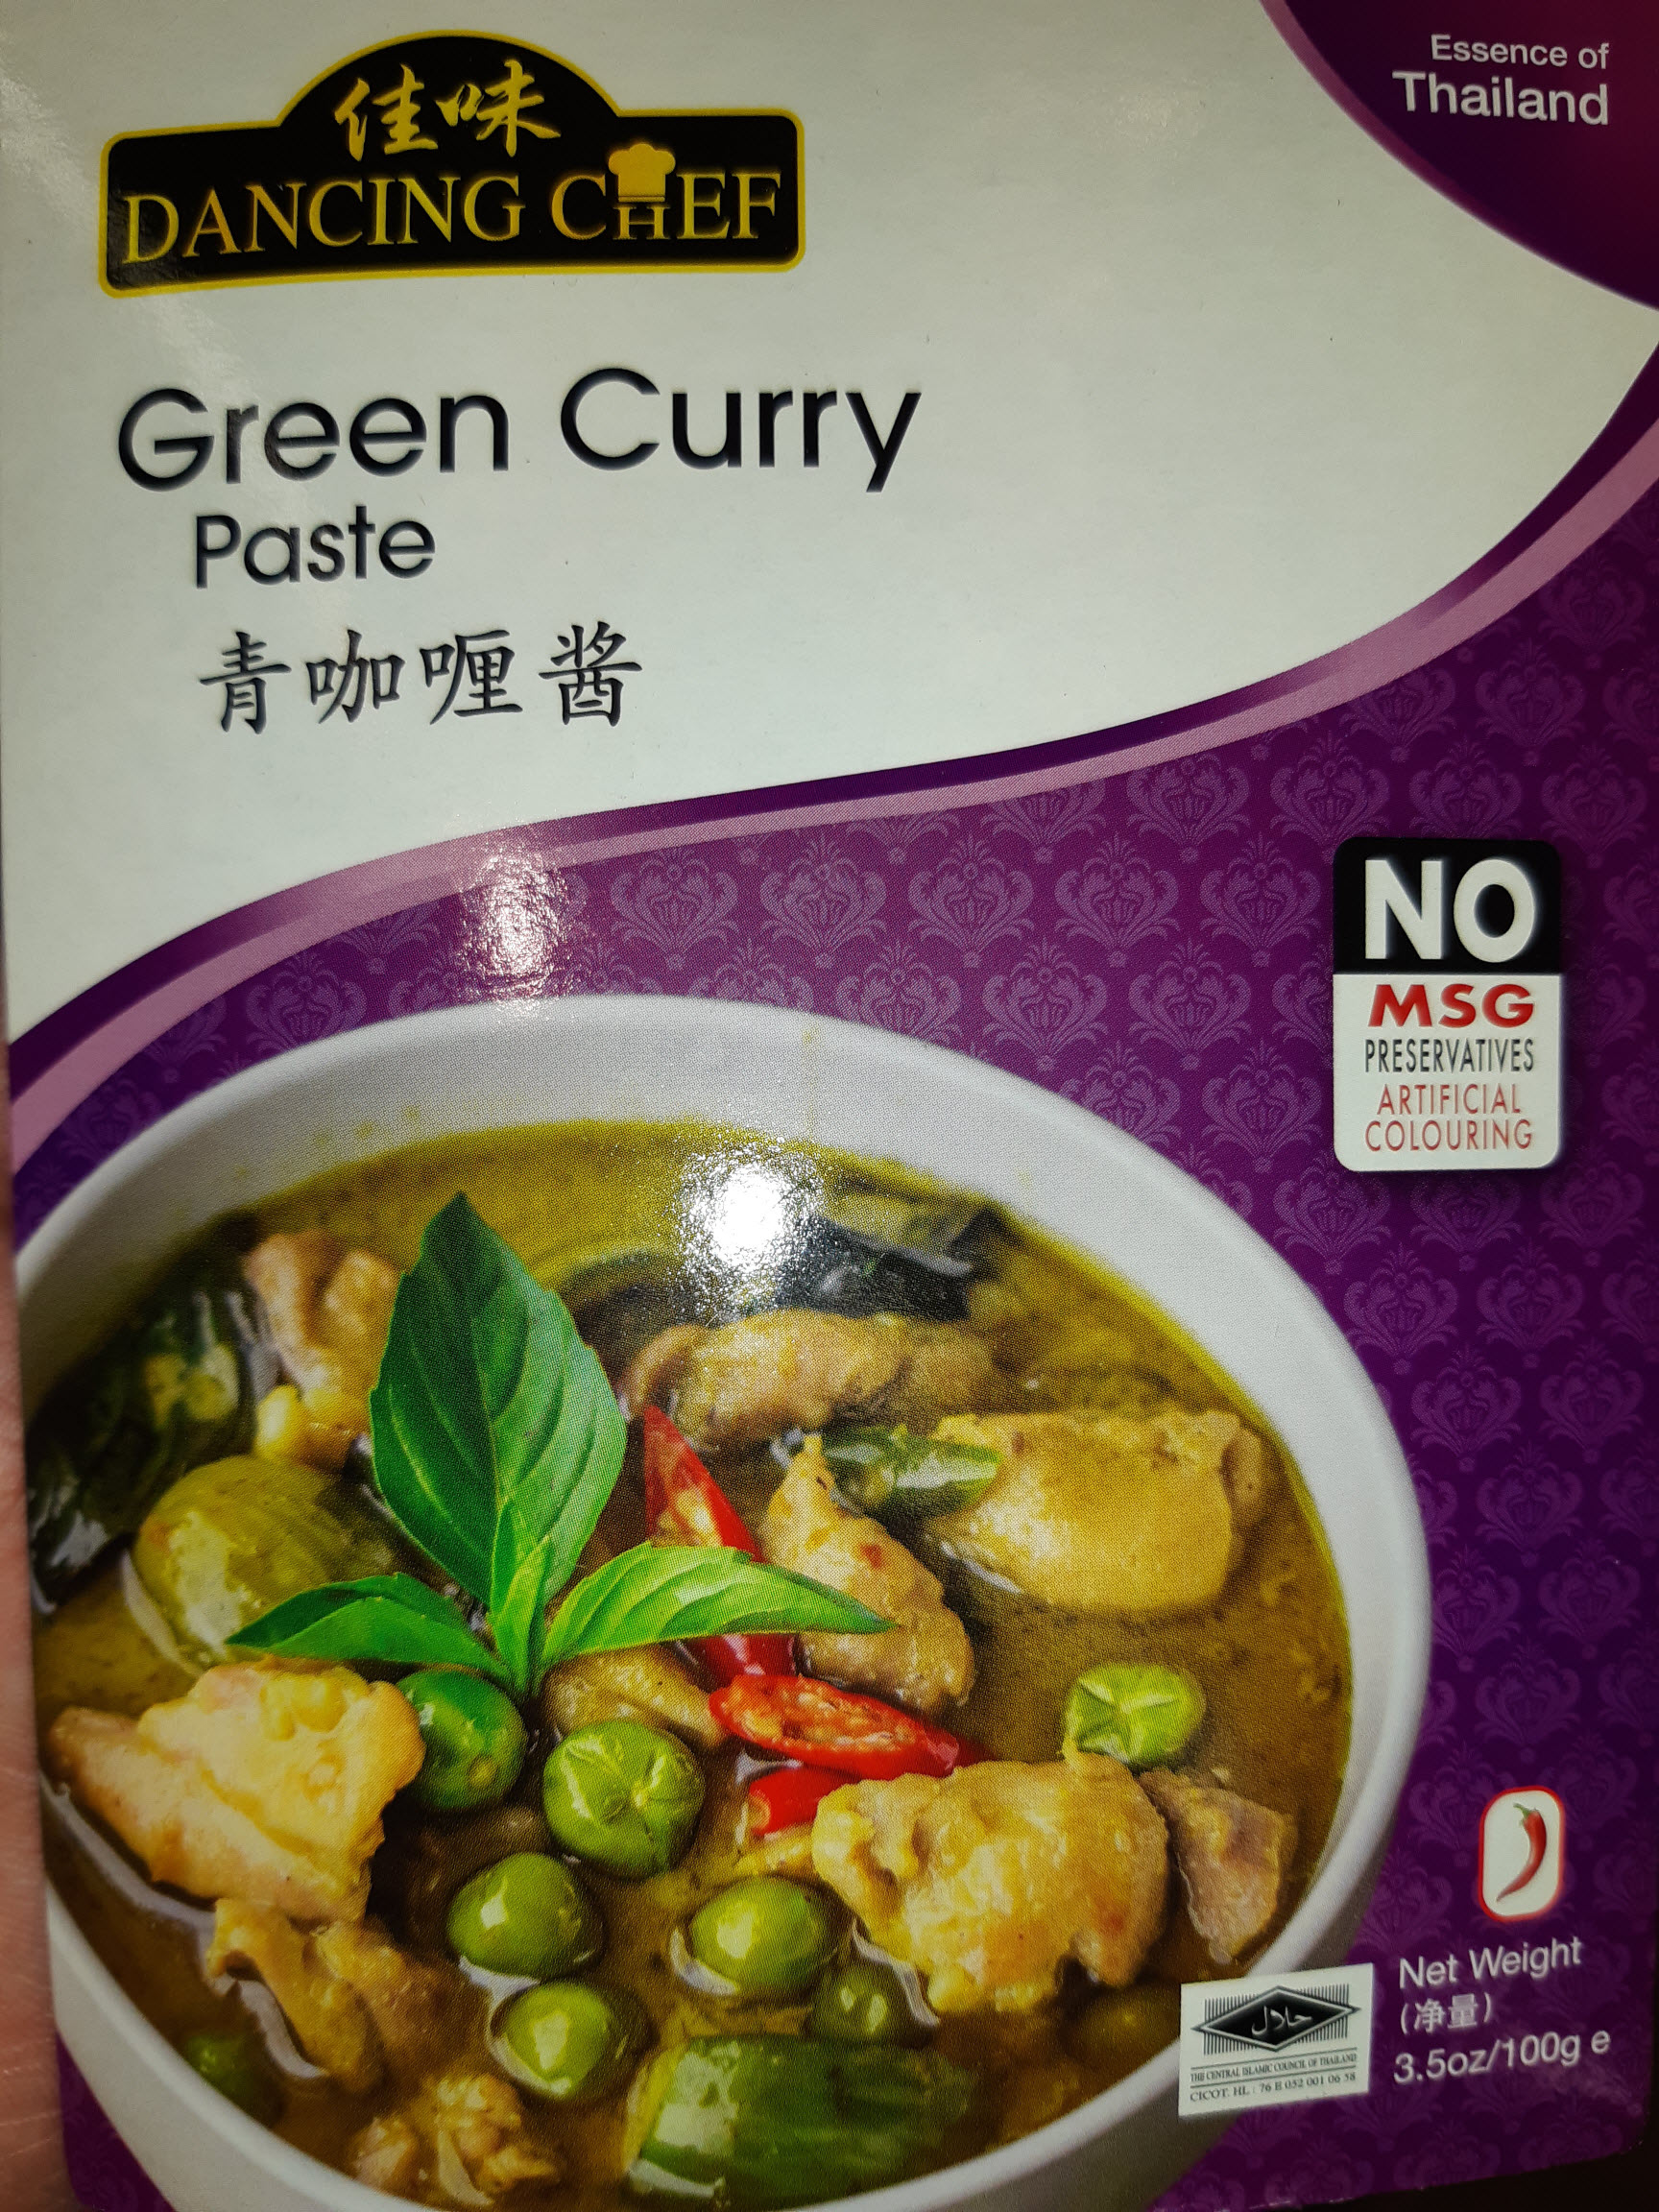 Thailand Dancing Chef Green Curry Paste 100g No MSG